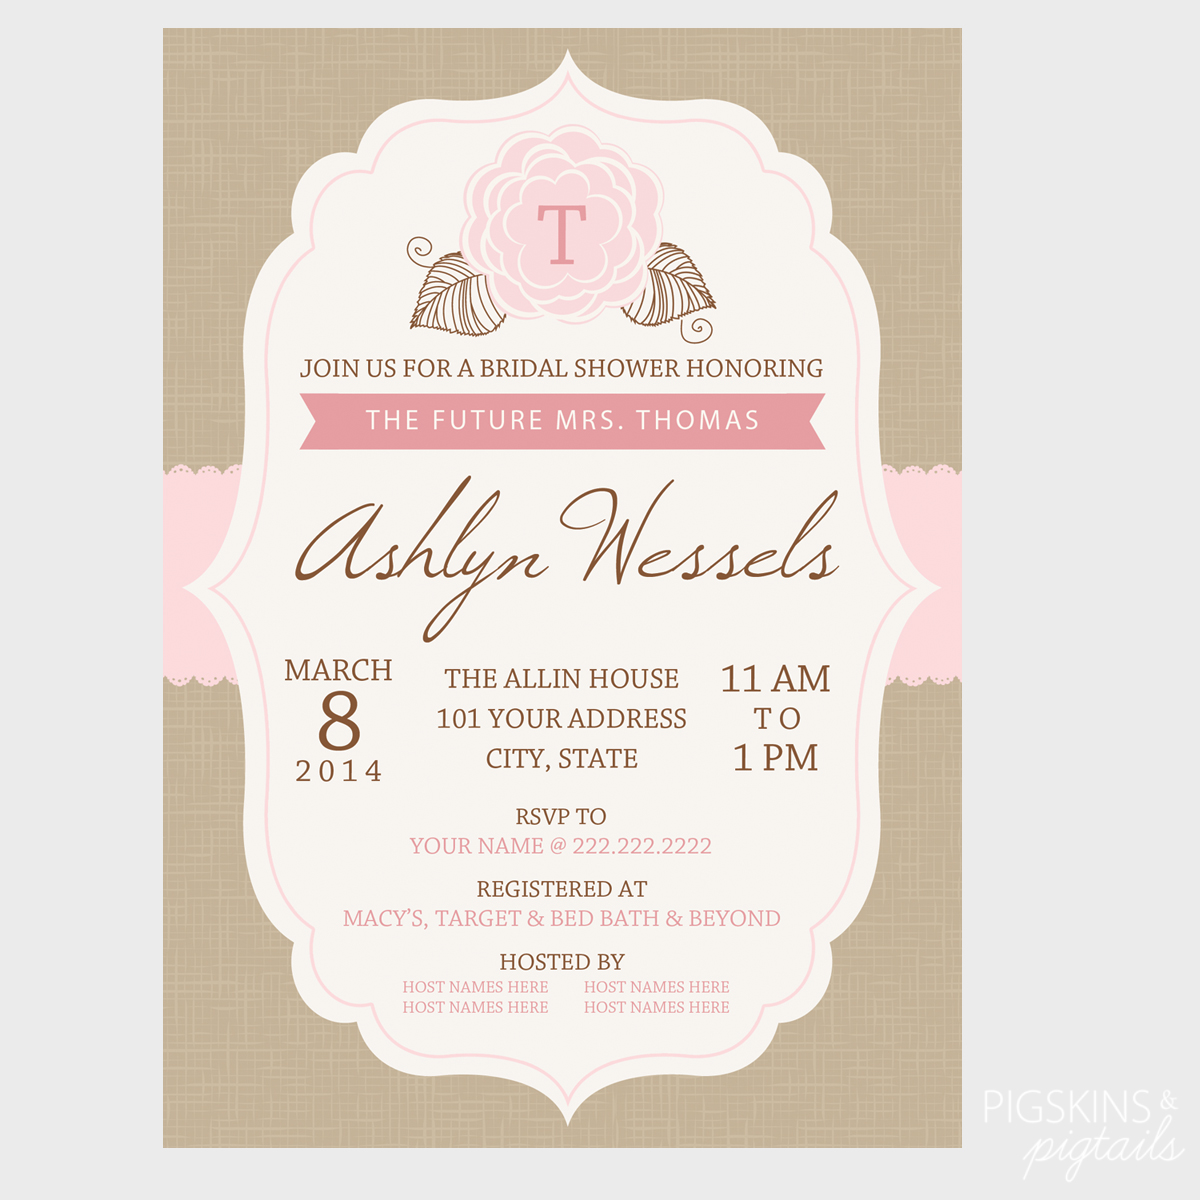 Bridal Shower Invitation Pigskins Pigtails – Sample of Bridal Shower Invitation